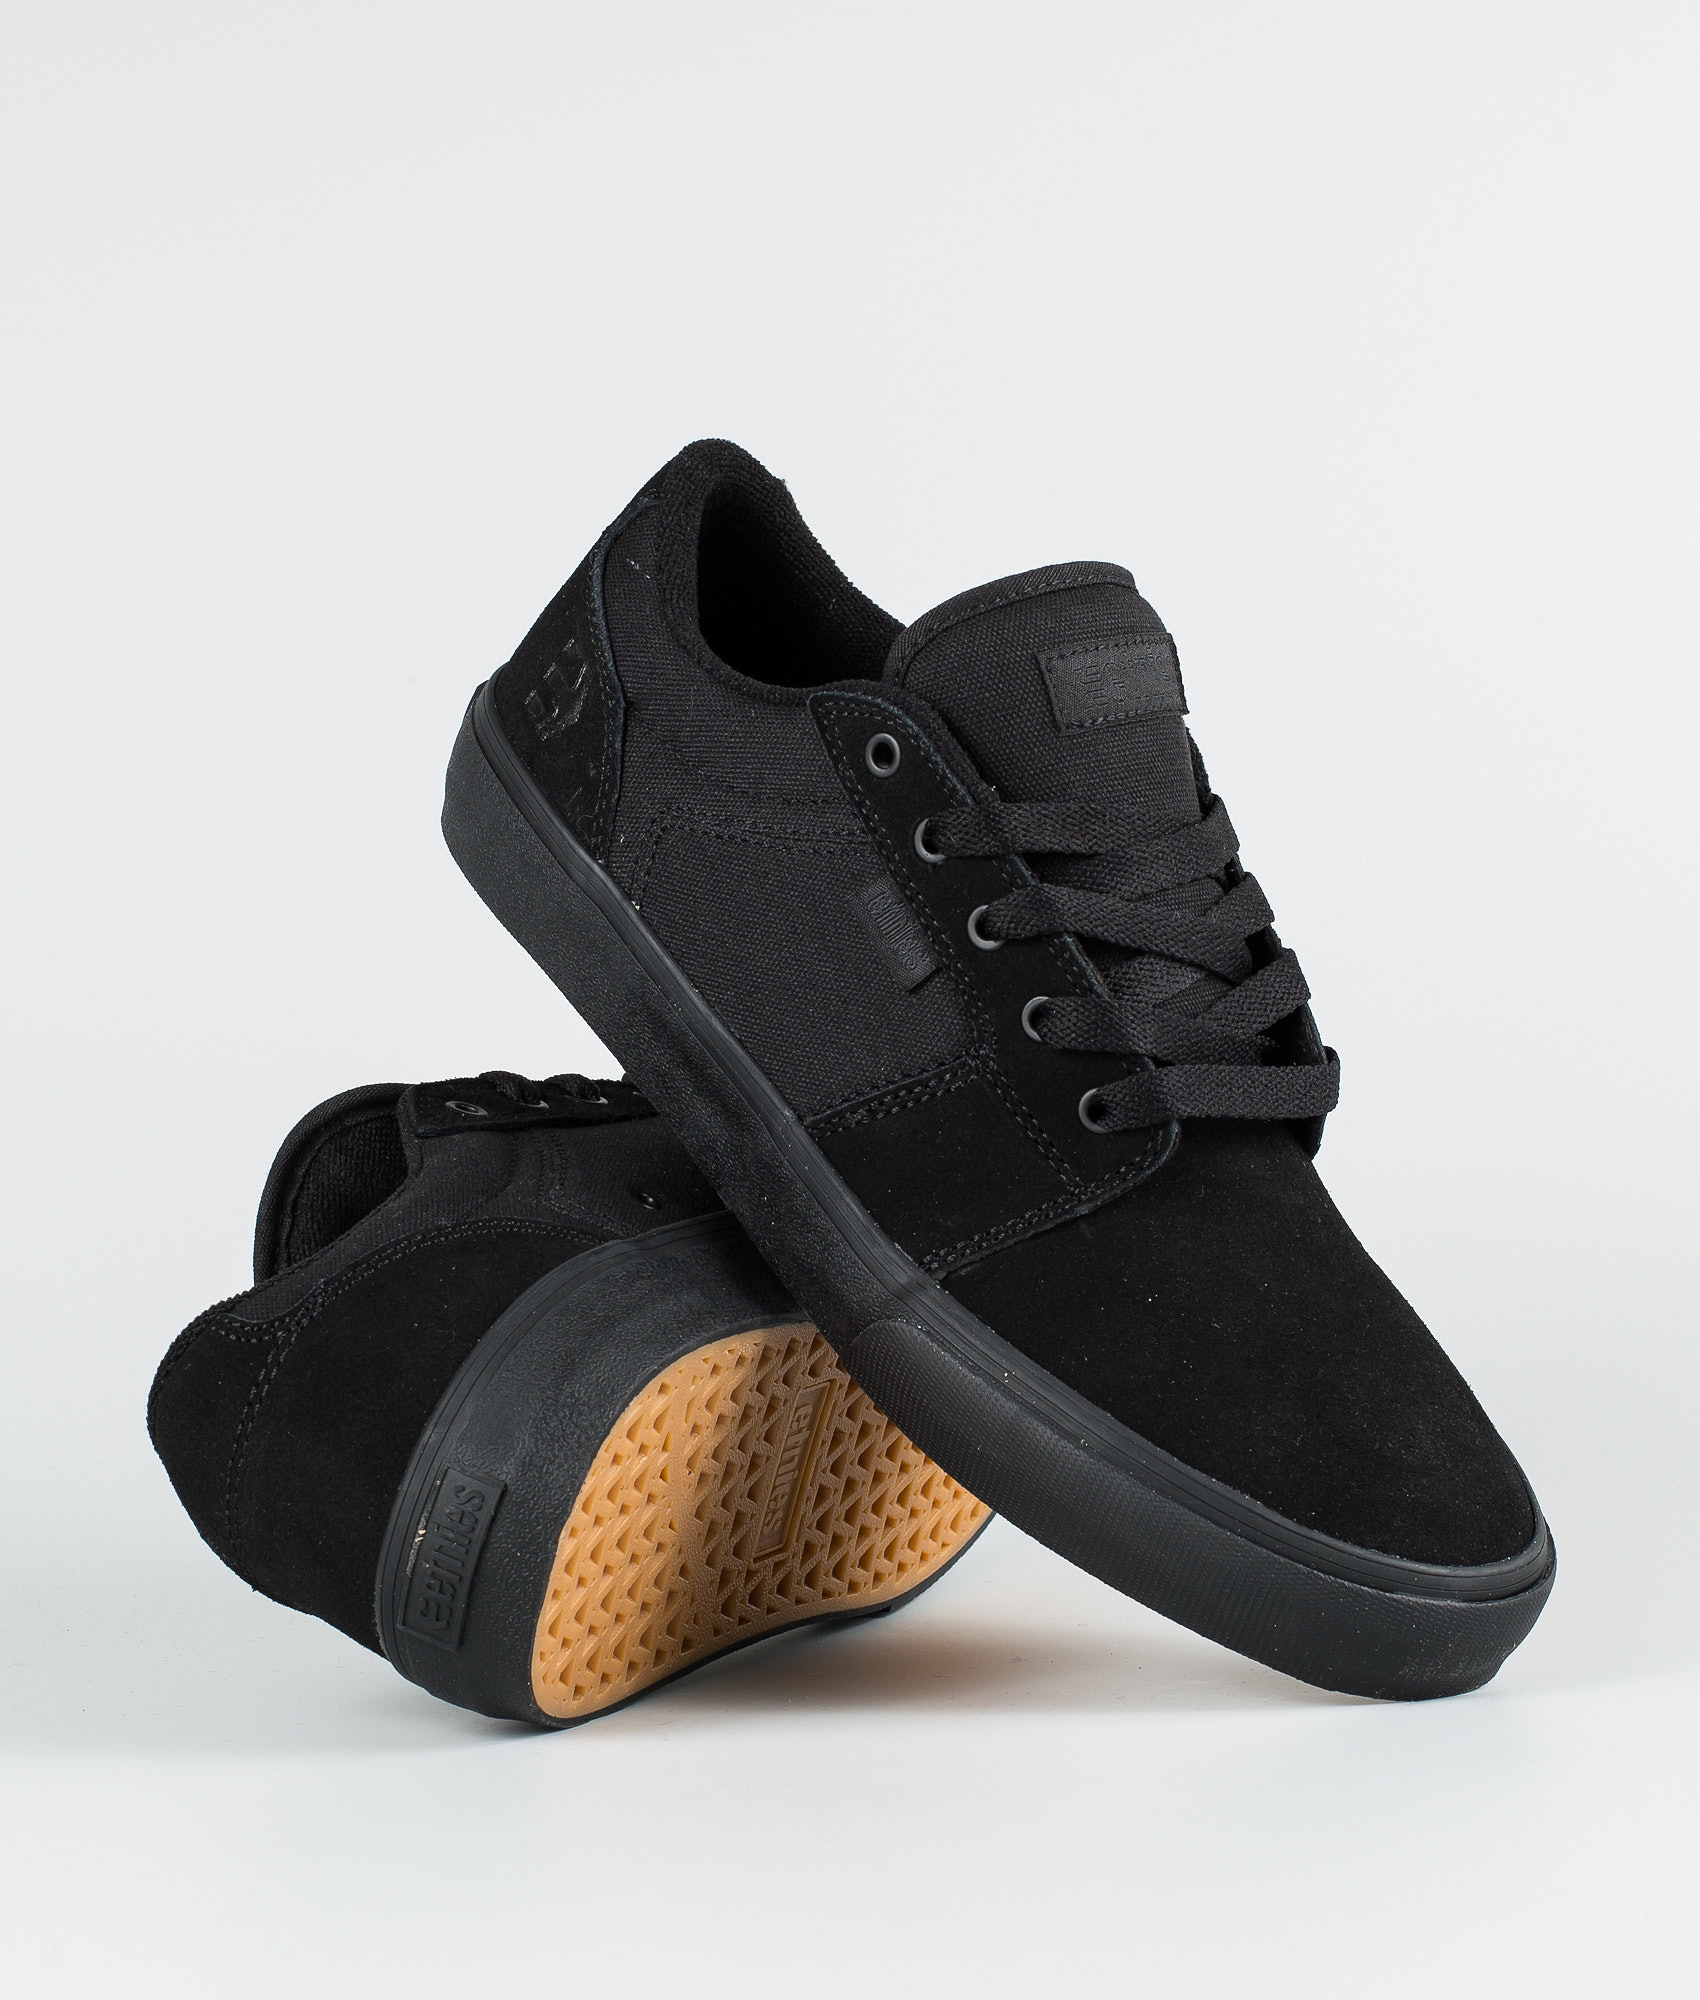 official photos 2b3c4 3a21a Etnies